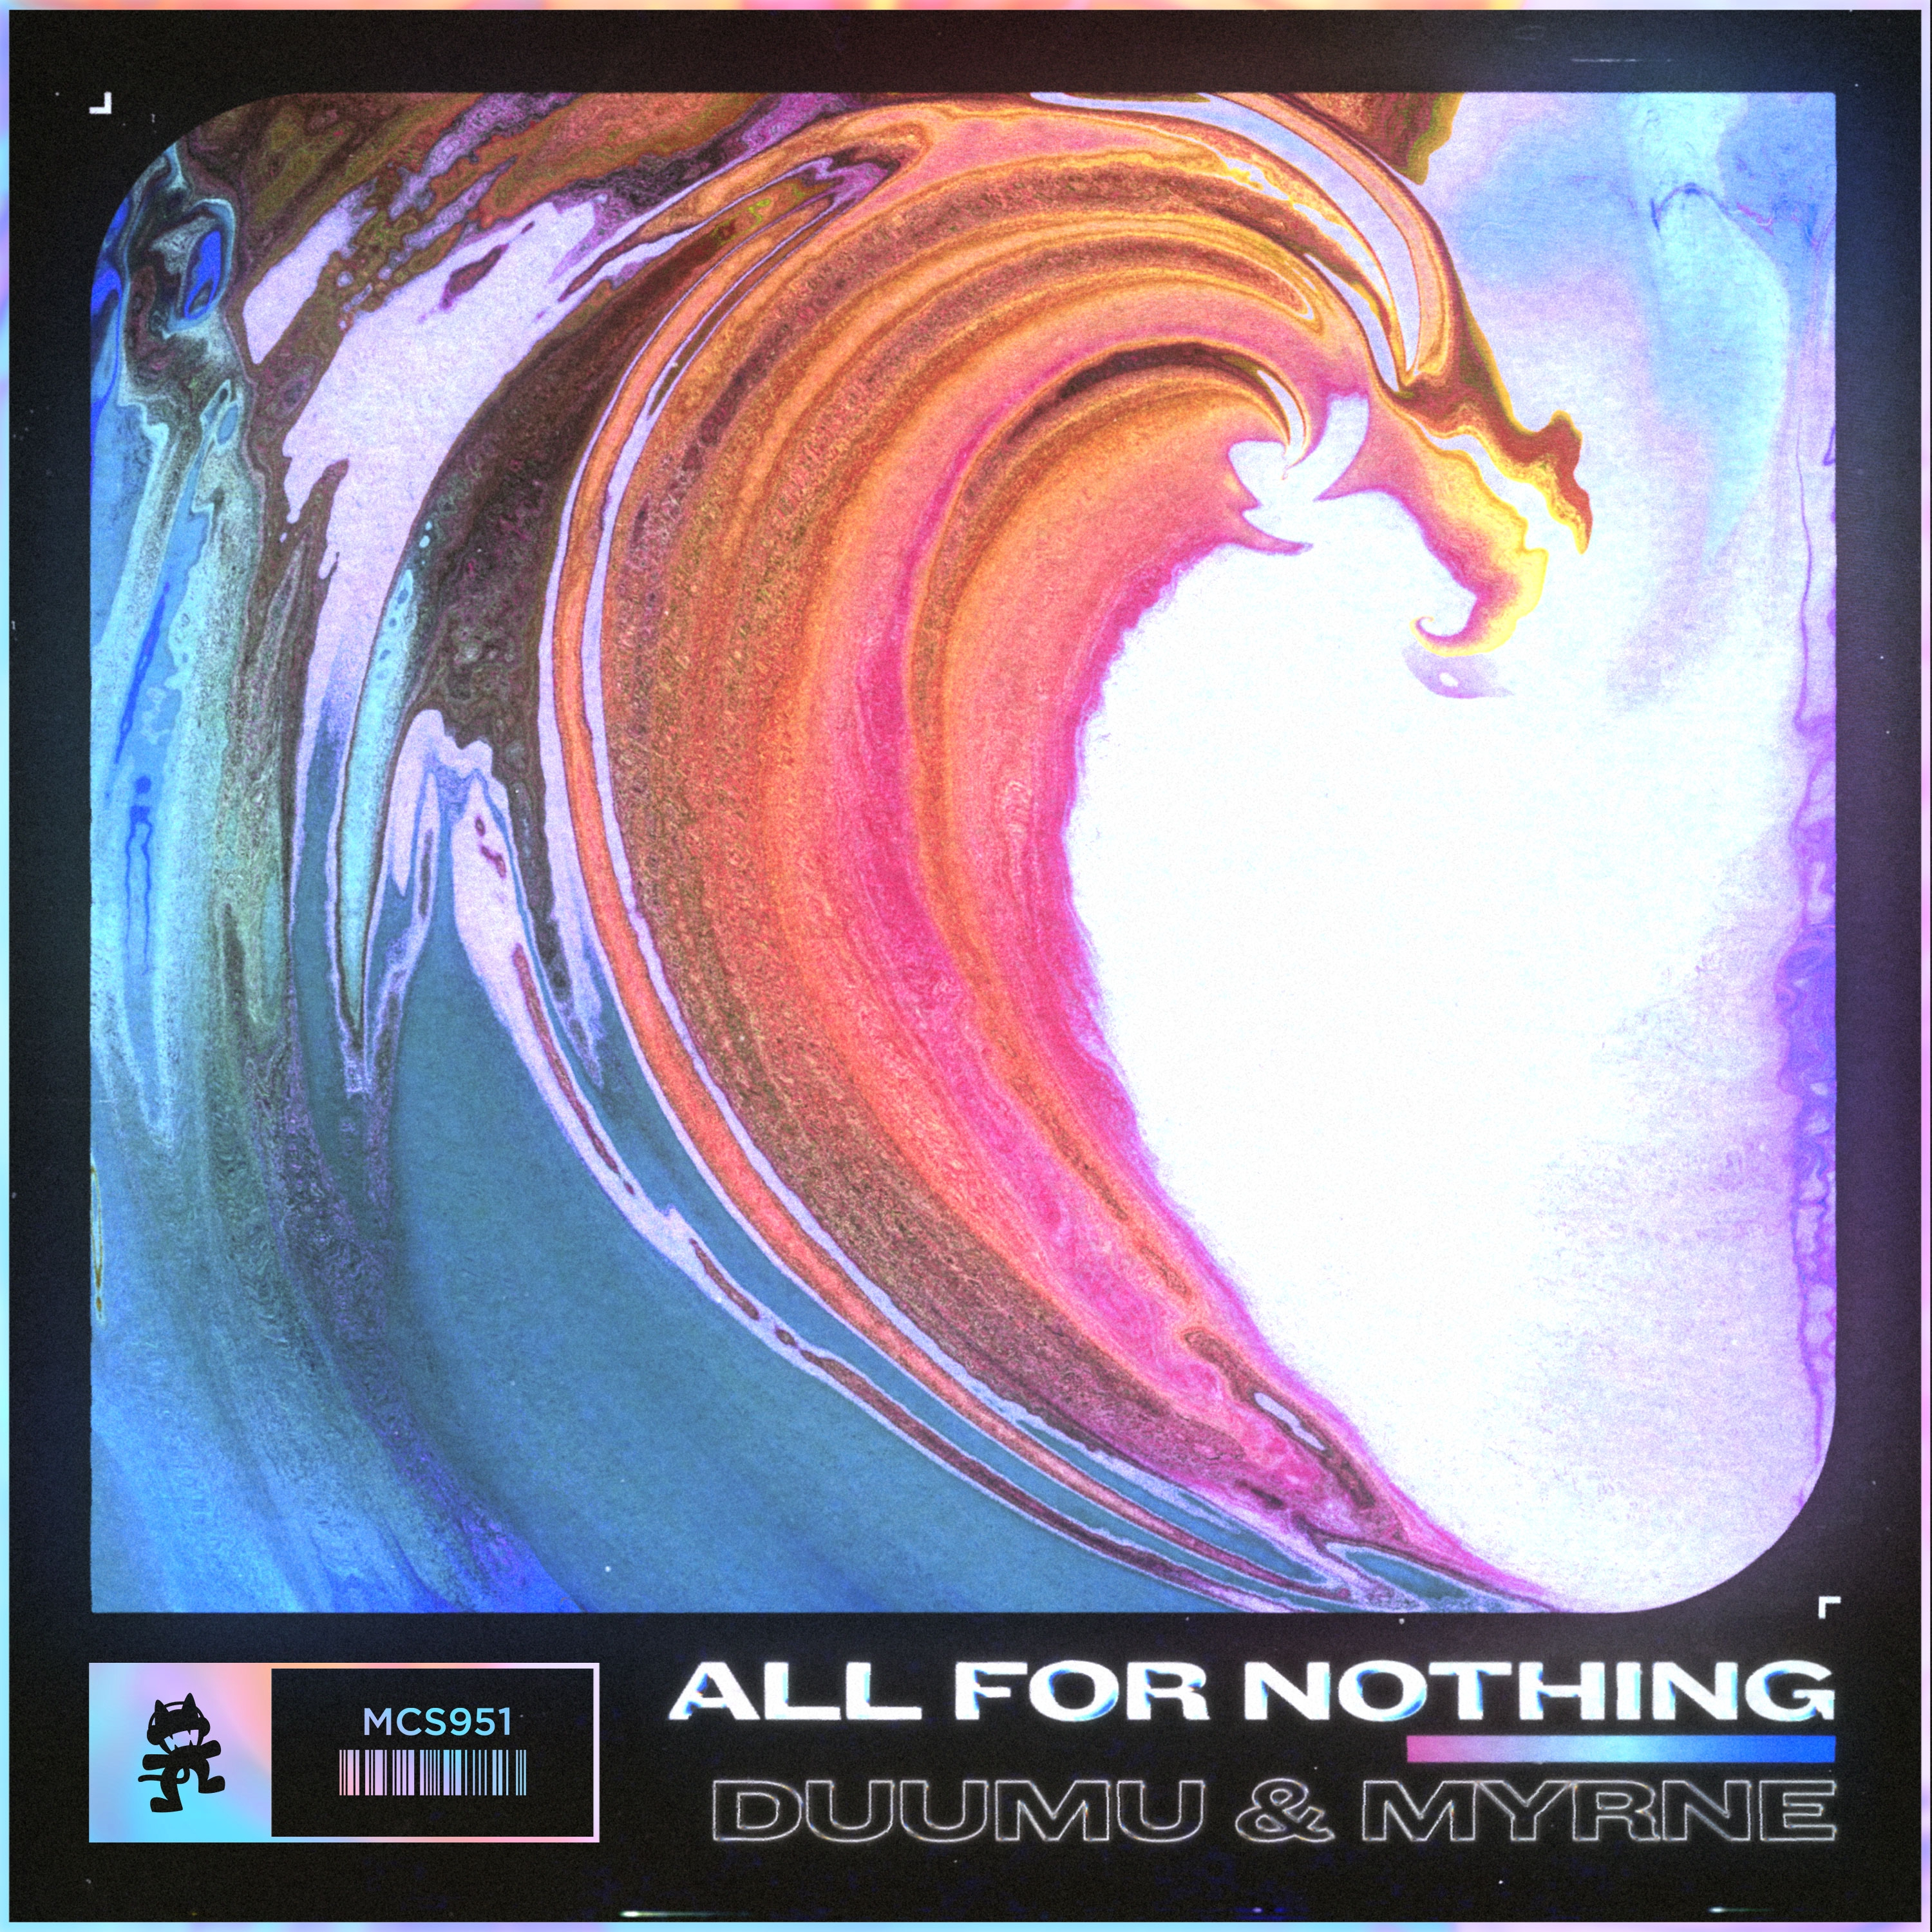 All For Nothing (Duumu & MYRNE)